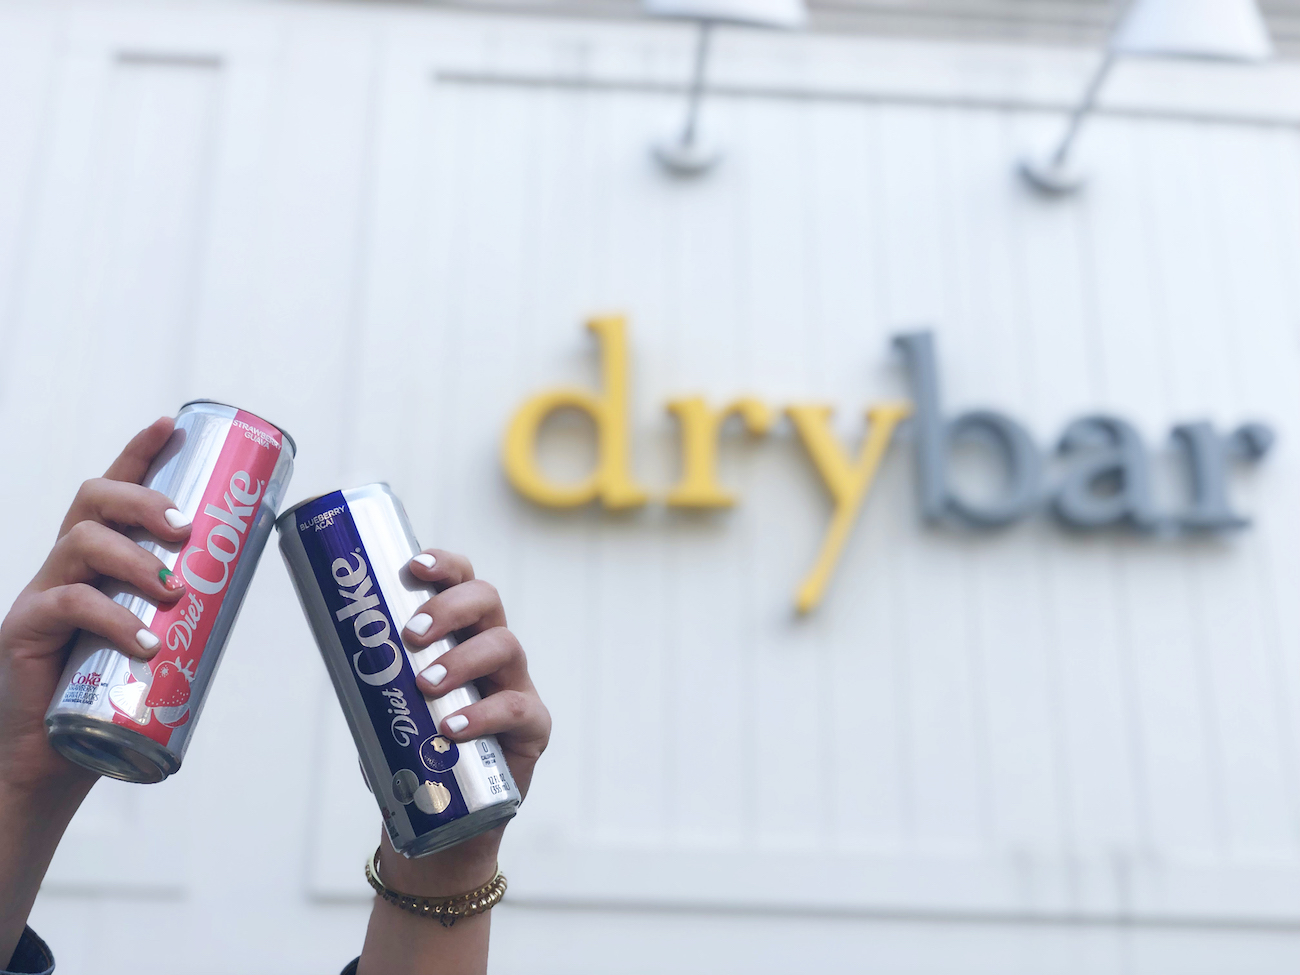 Enter to win two VIP tickets to our Agenda x Diet Coke x Drybar Pop-Up happening this Saturday